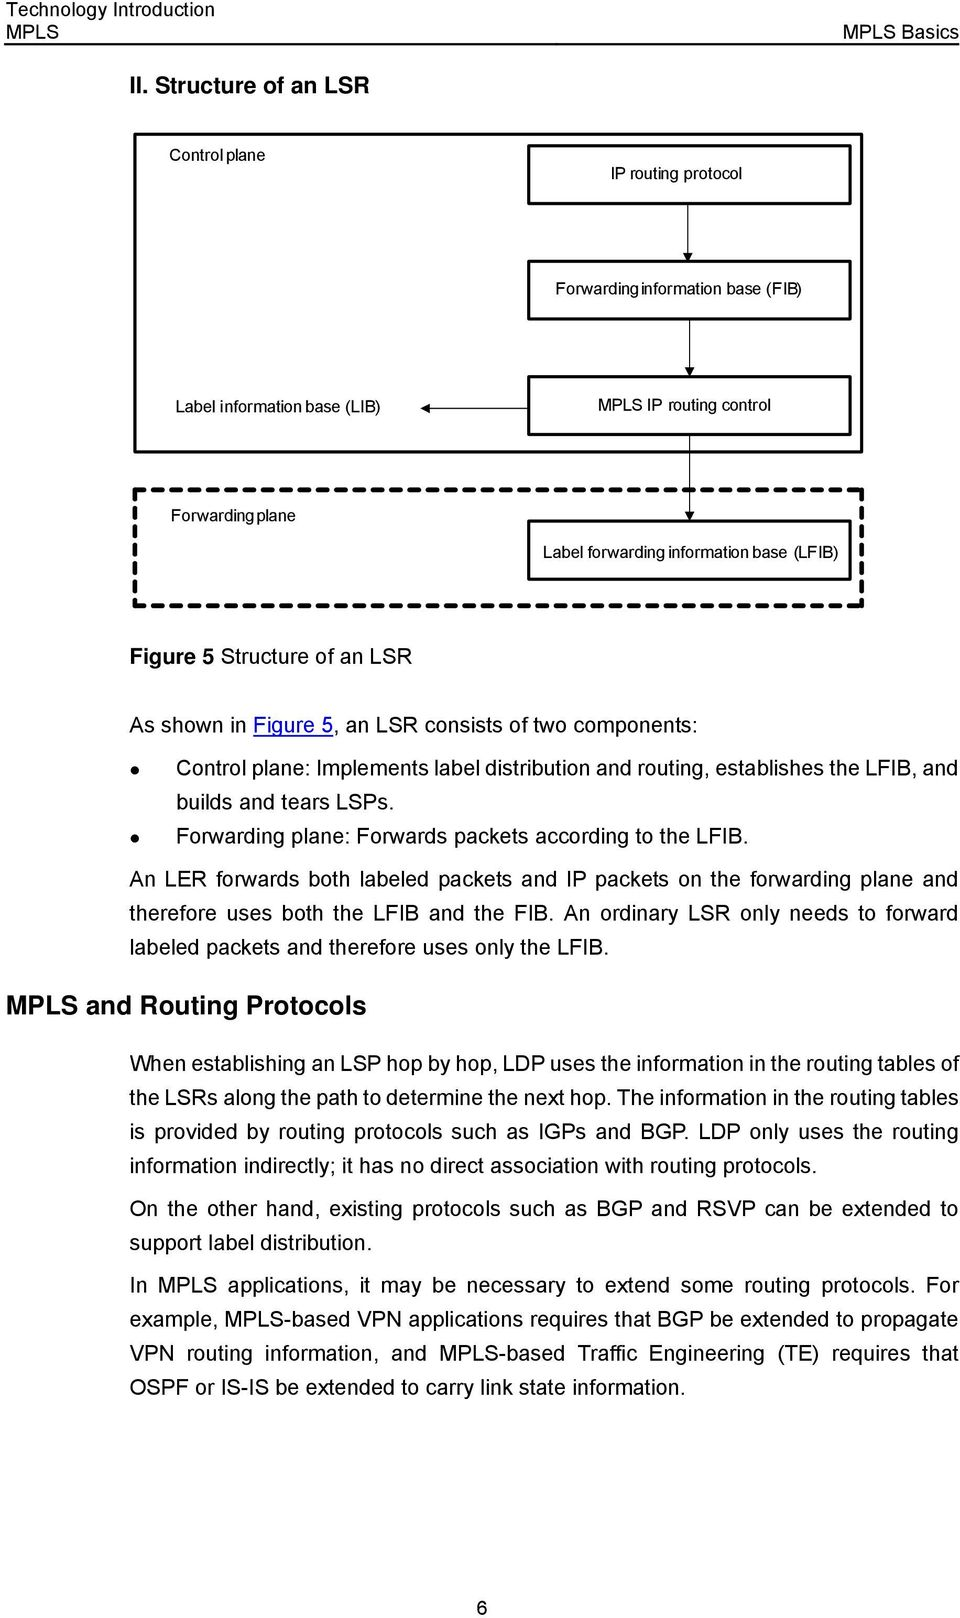 Forwarding plane: Forwards packets according to the LFIB. An LER forwards both labeled packets and IP packets on the forwarding plane and therefore uses both the LFIB and the FIB.